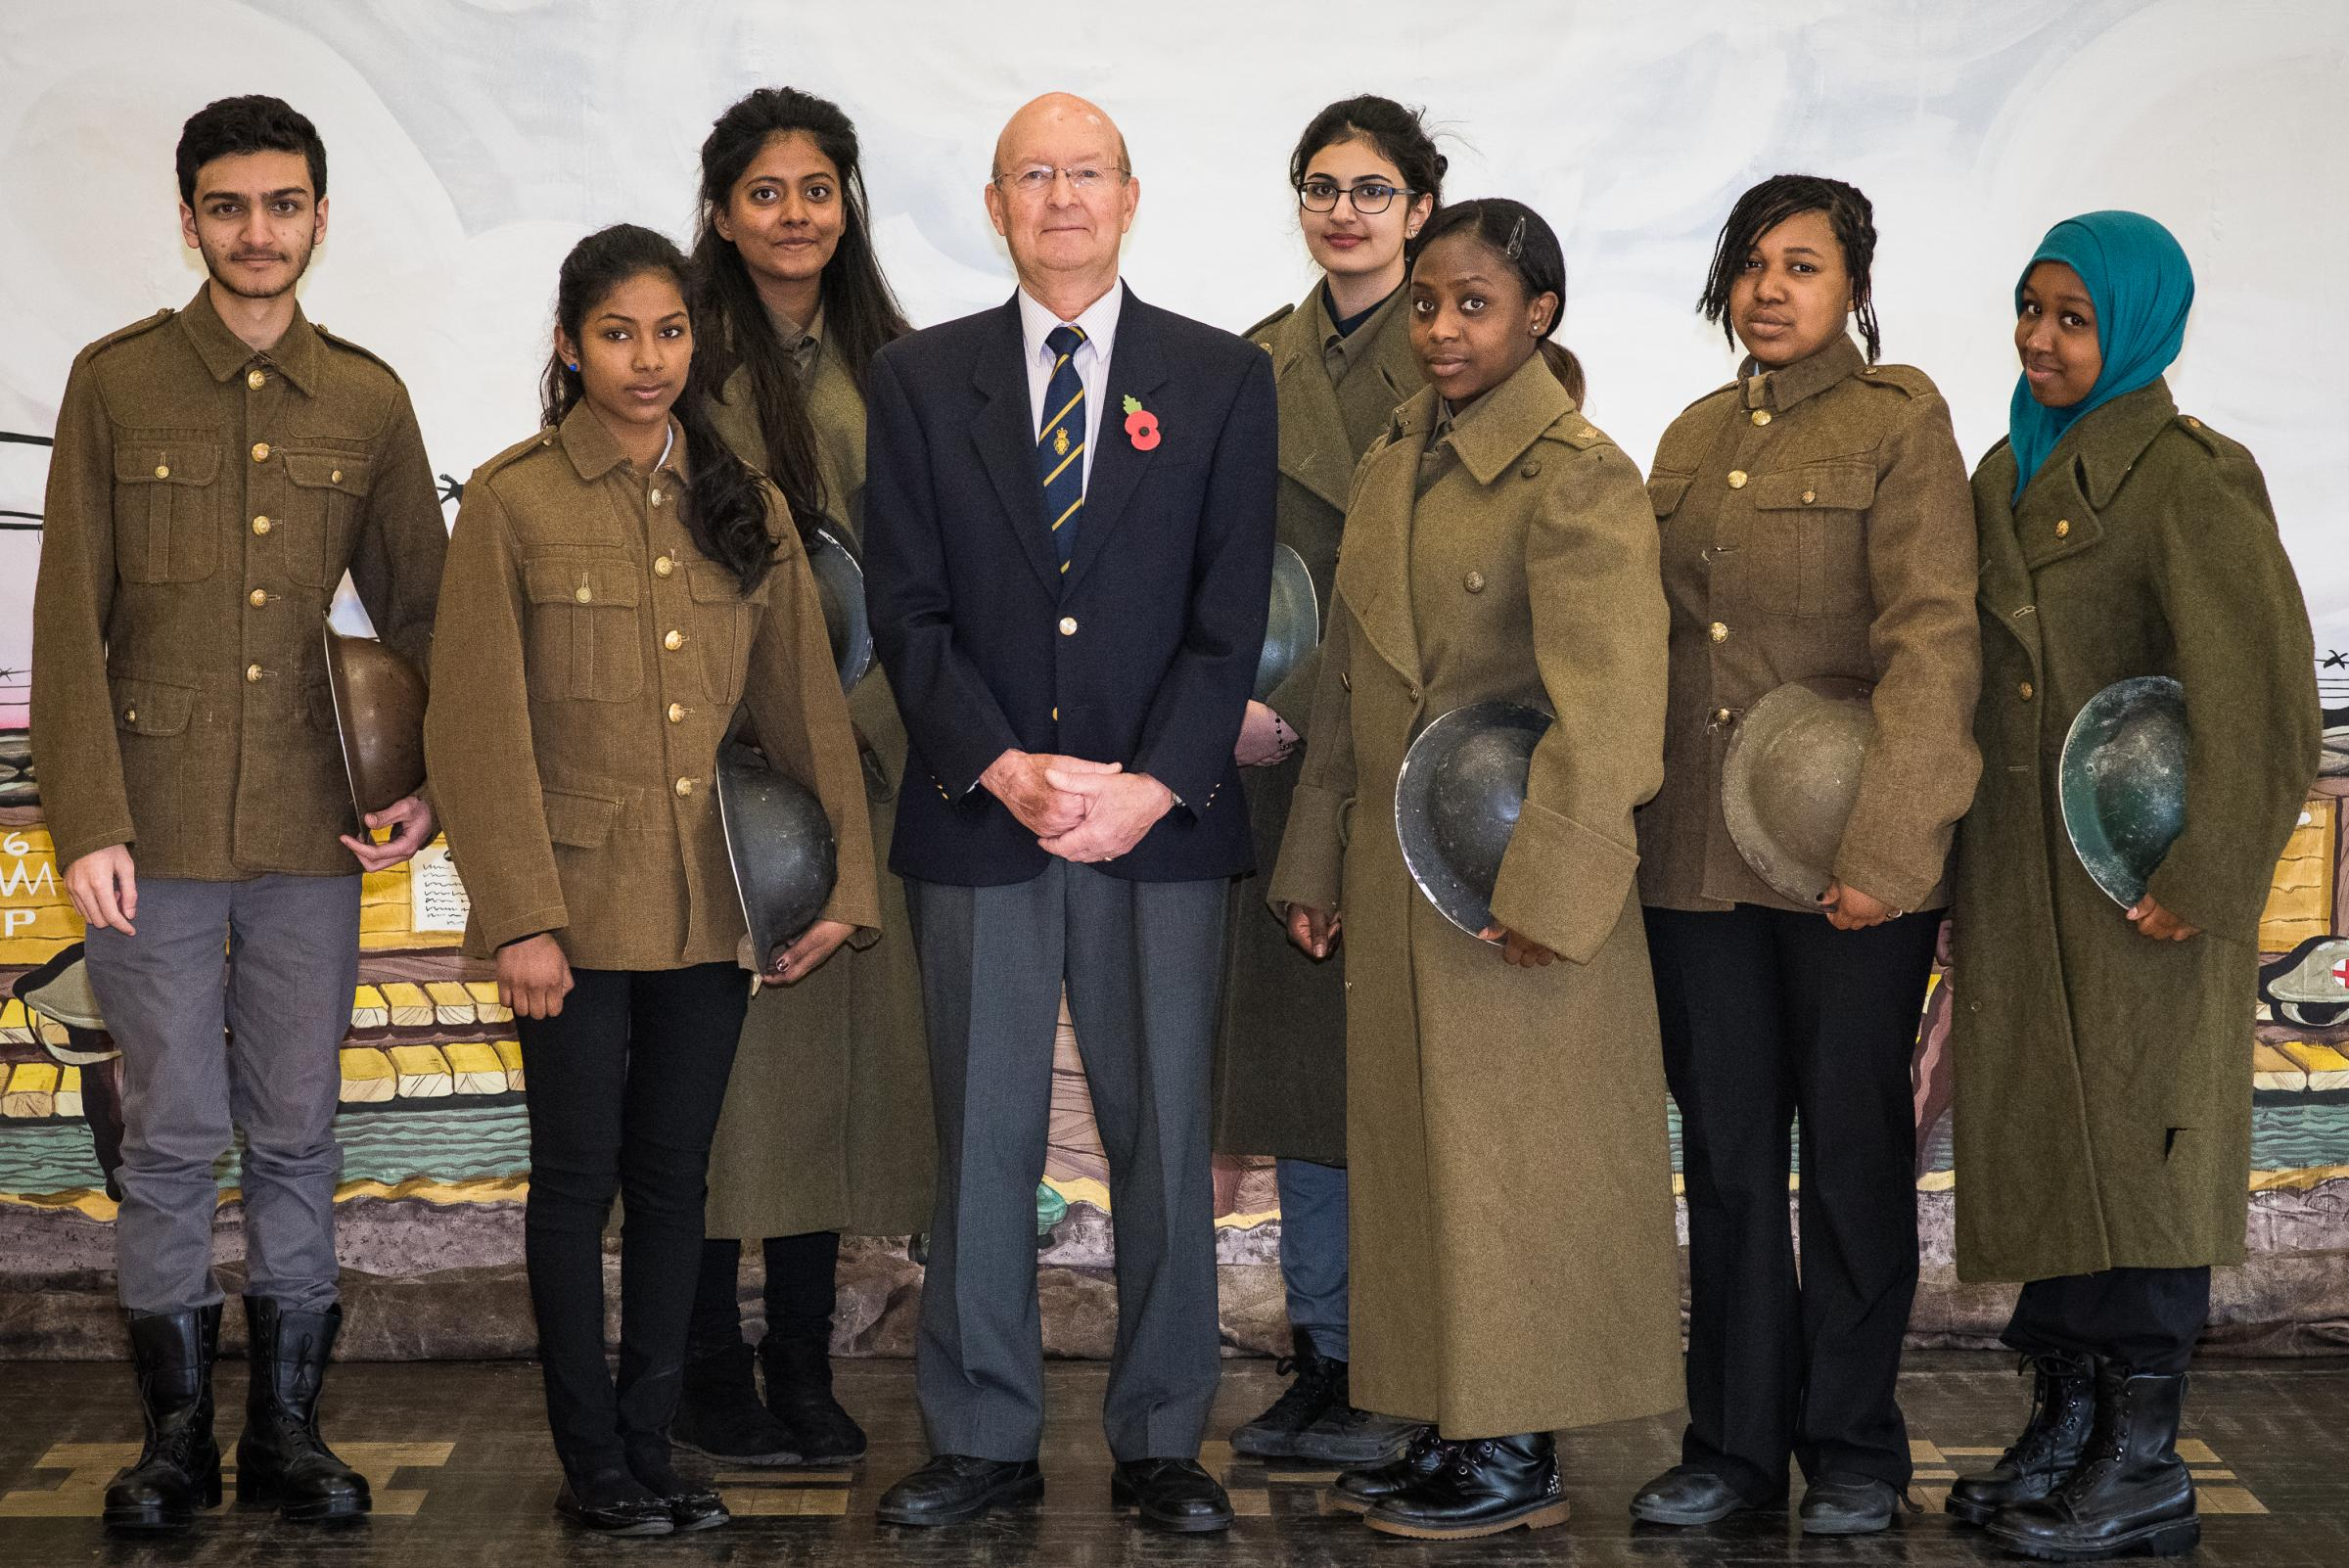 Pupils with Tony Walton of The Royal British Legion Poppy Appeal. Photograph by Steve Foster